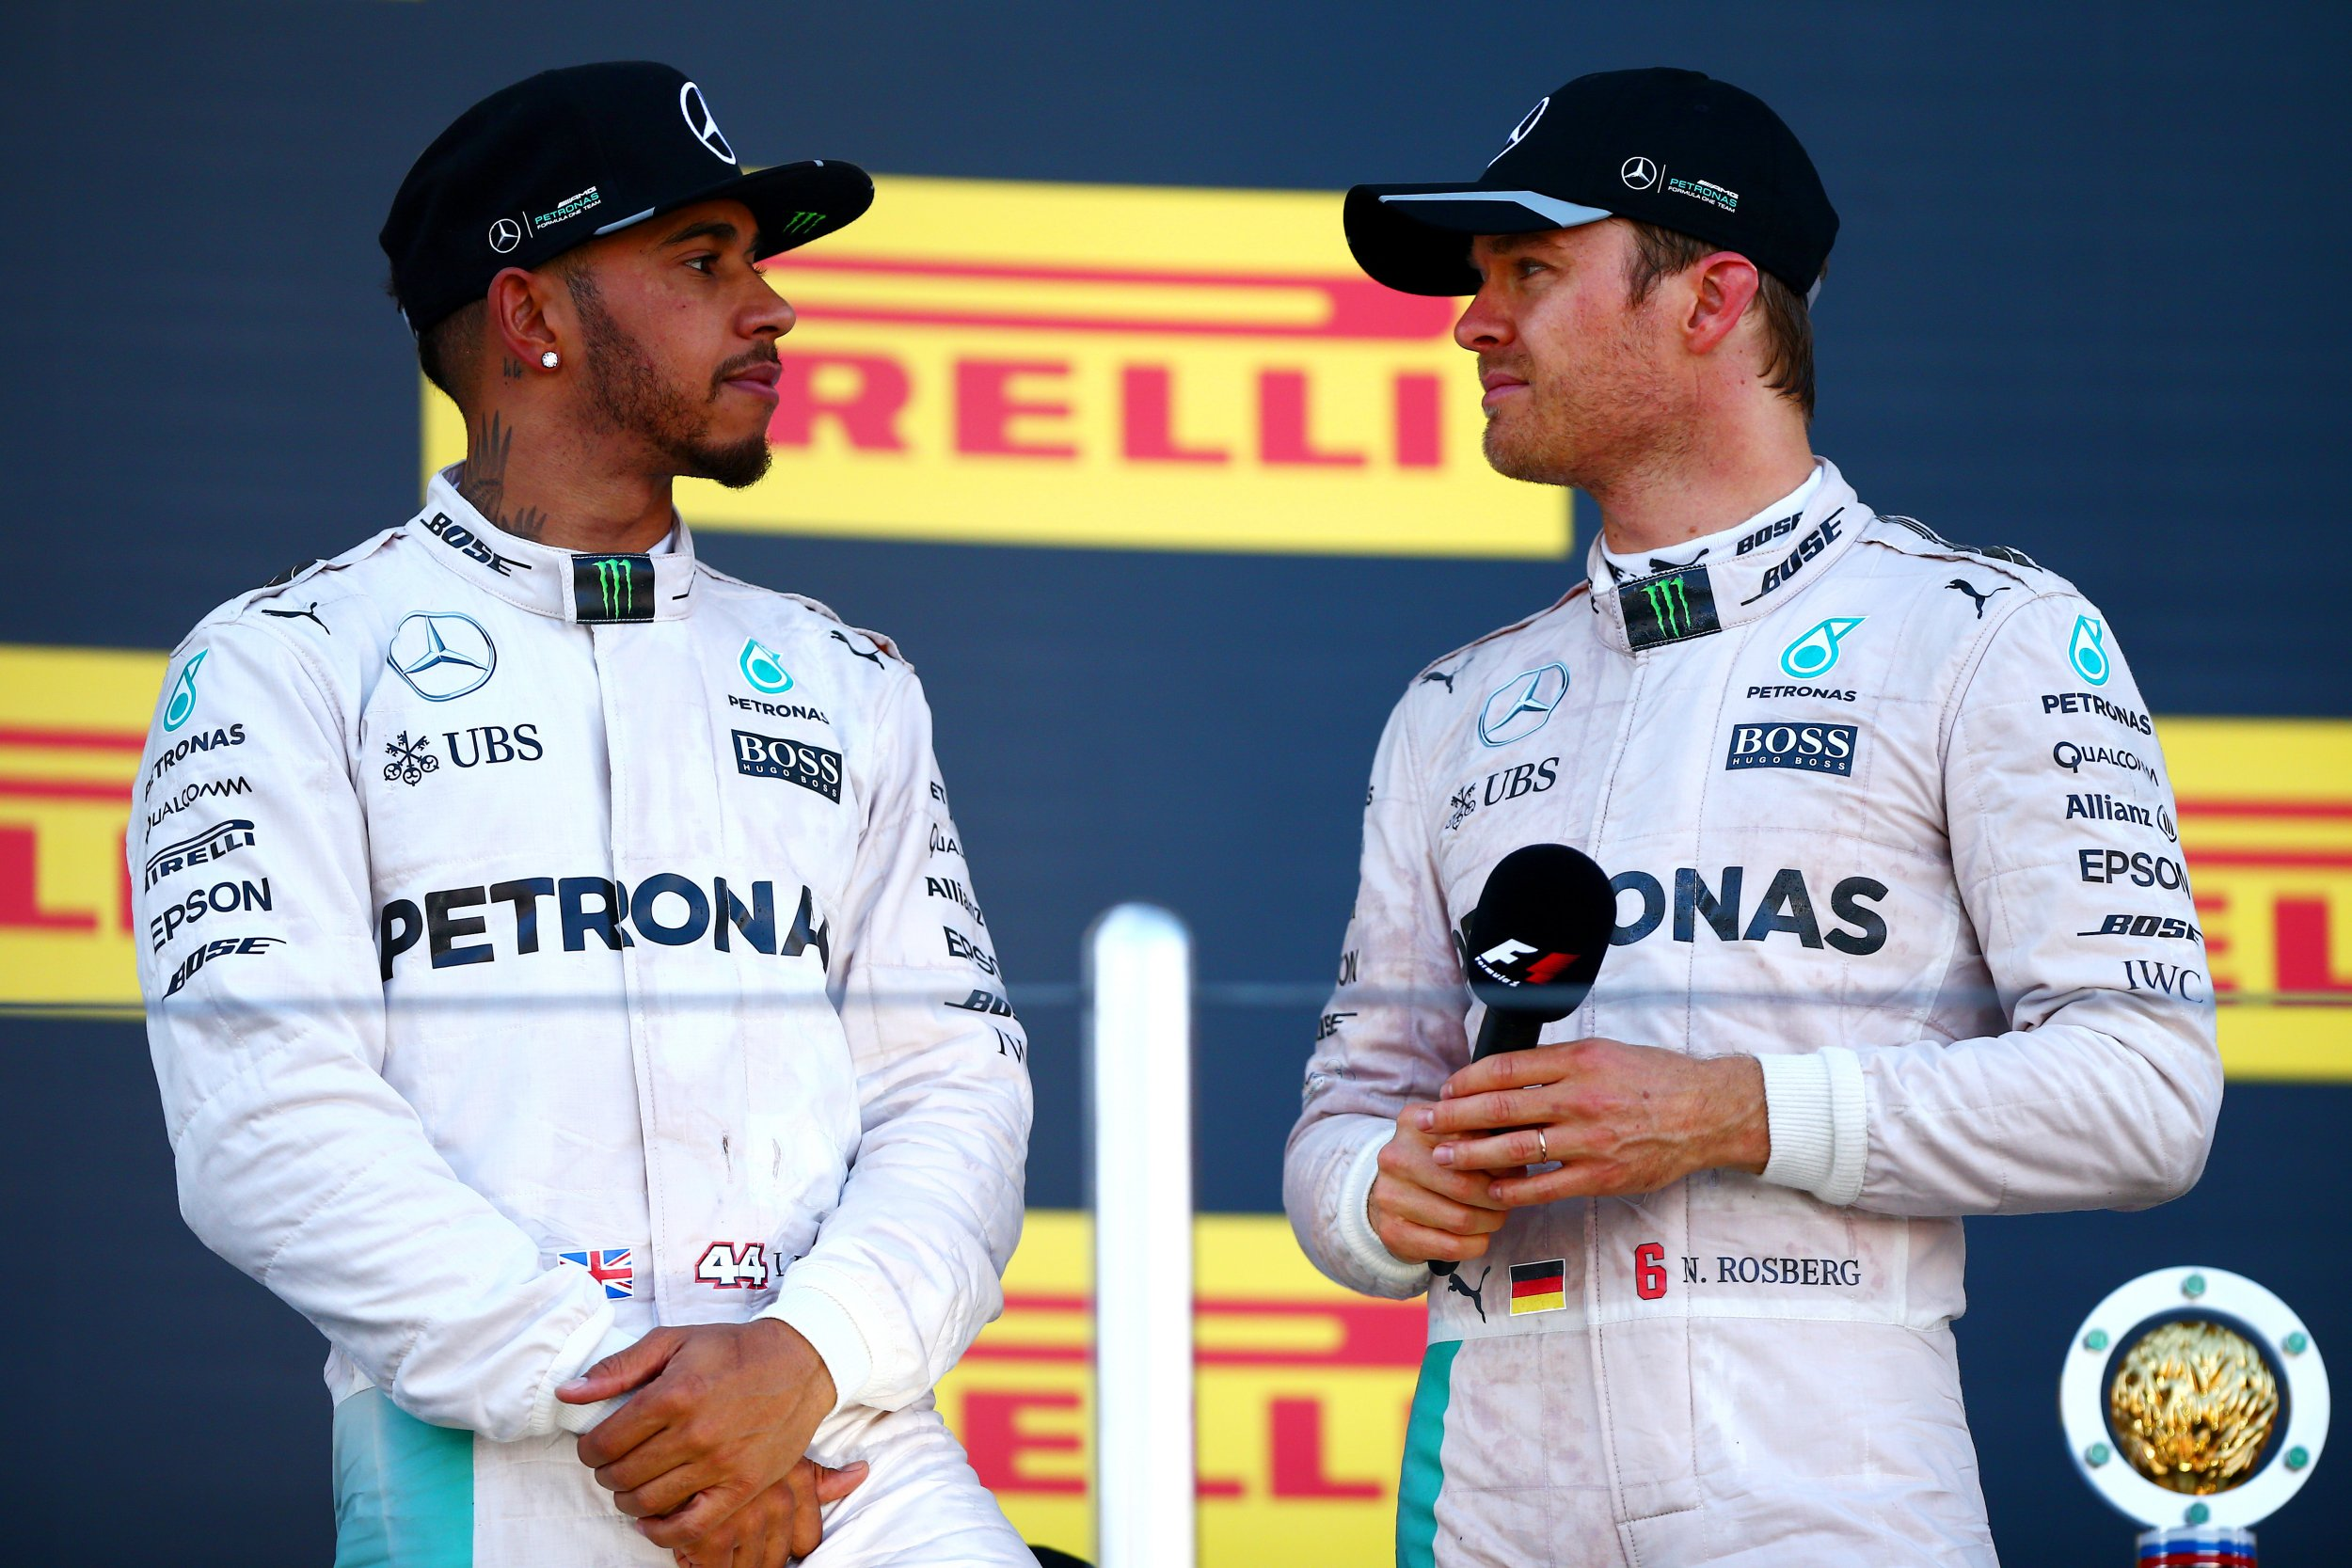 nico rosberg and lewis hamilton relationship